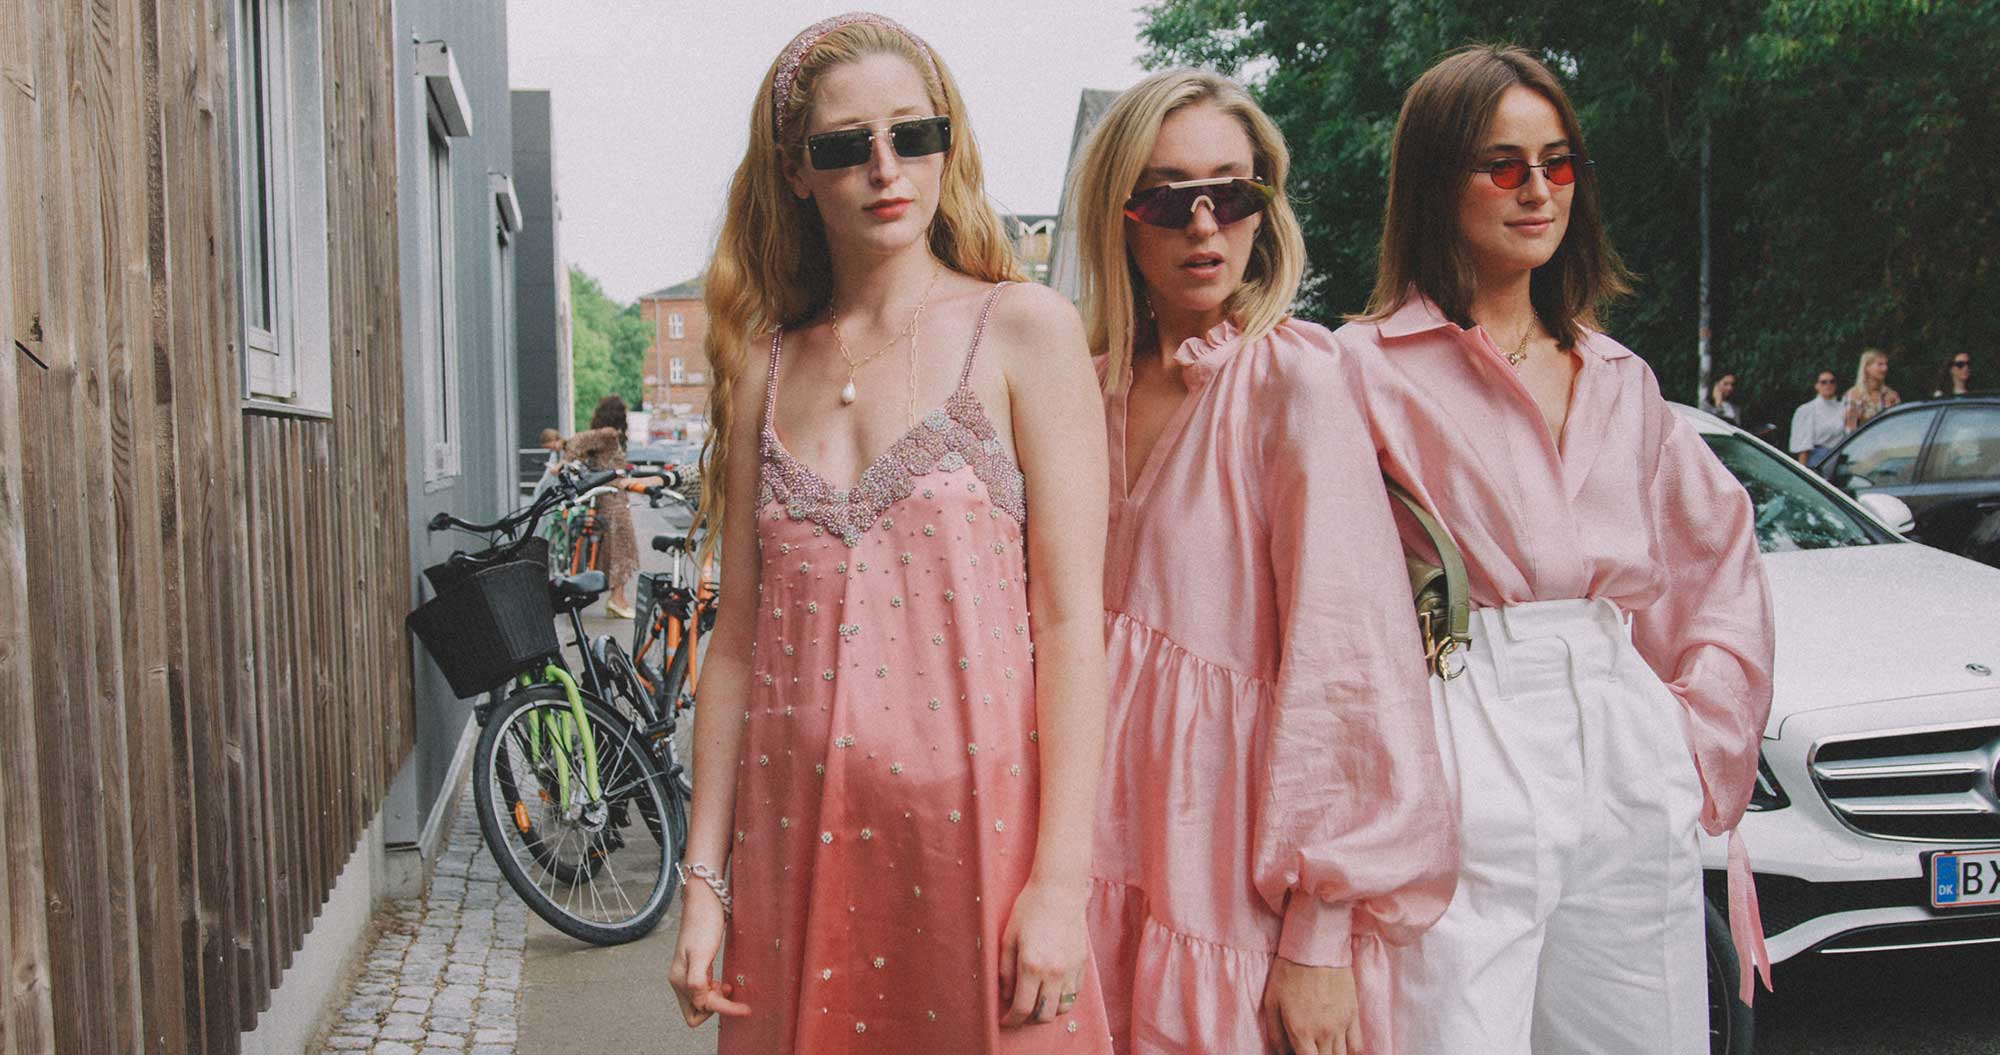 COPENHAGEN FASHION WEEK - Best outfits of Copenhagen Fashion Week street style